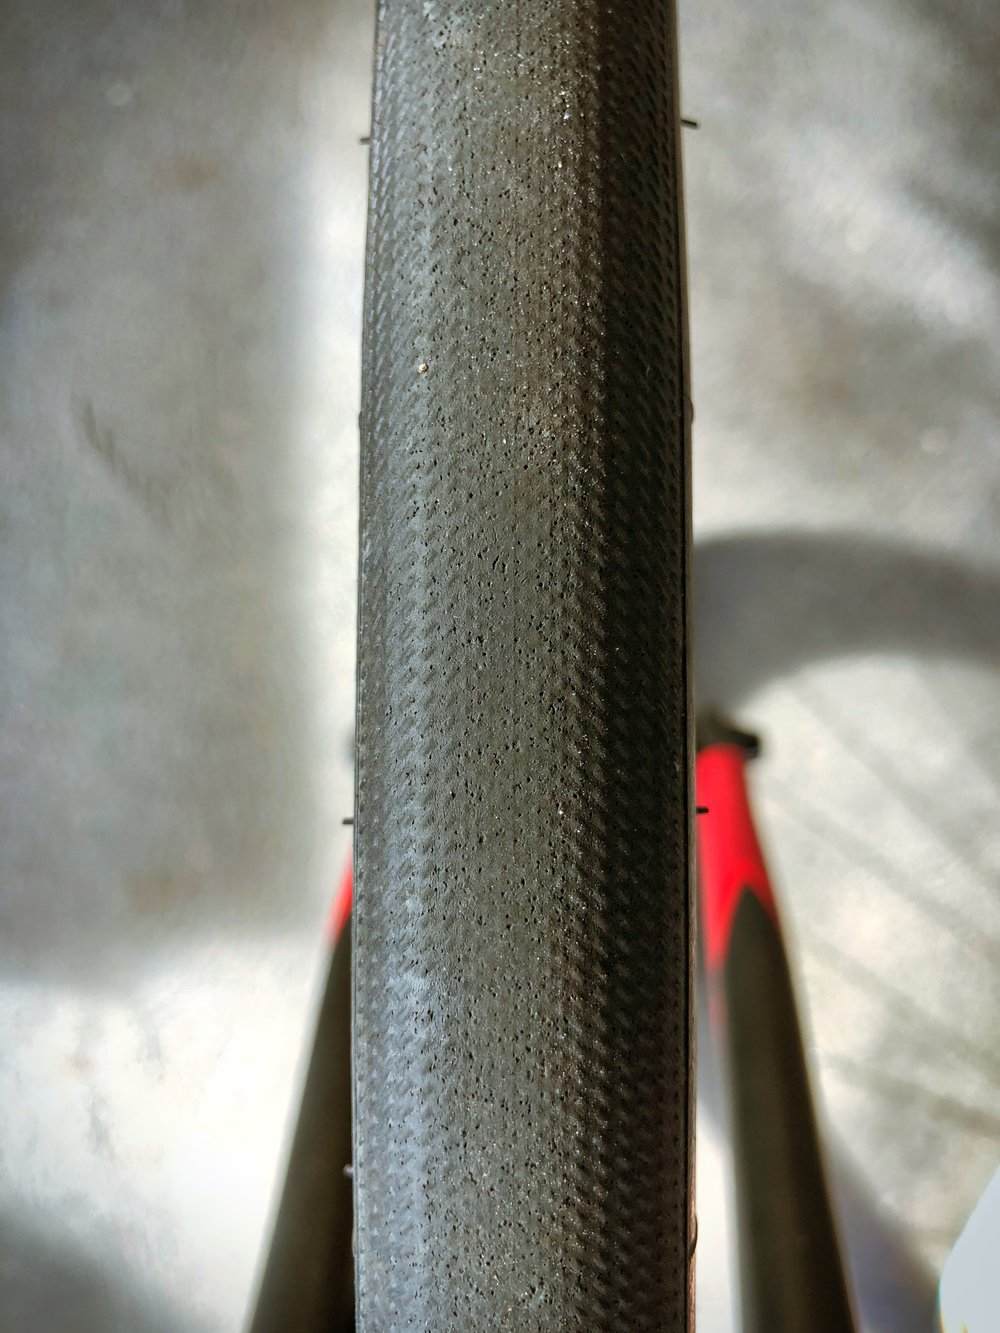 1,931 km - S-Works Turbo Road Tubeless fitted to front